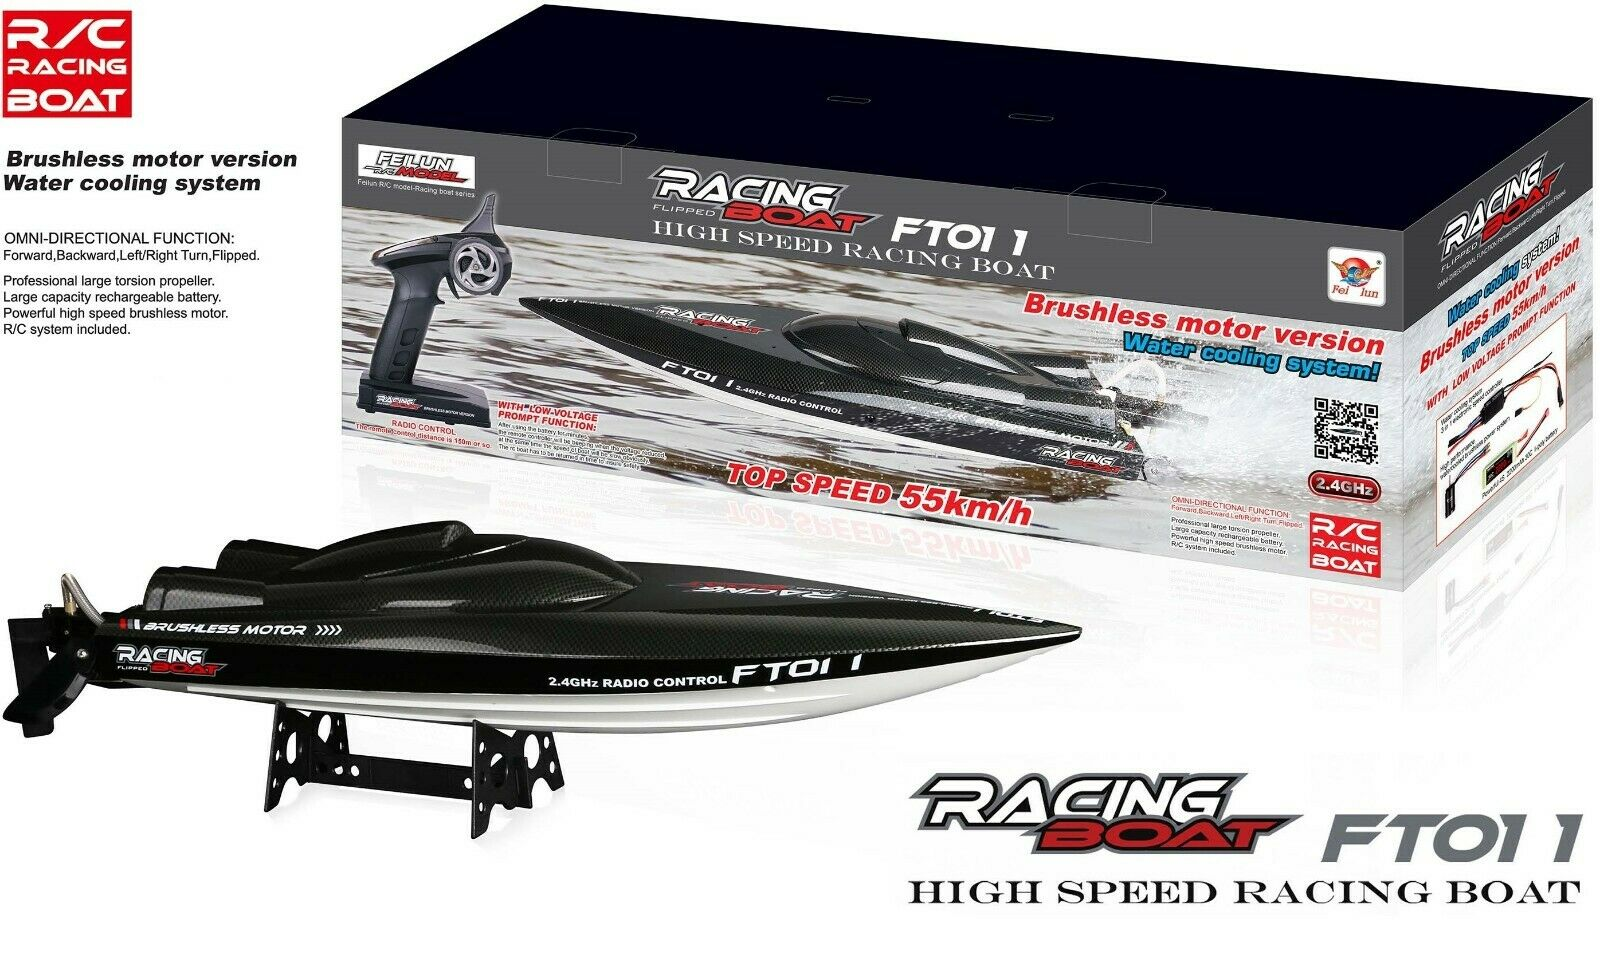 65CM RC Racing Boat Brushless Motor  FAST 55km h Built-in Water Cooling System  risparmia fino al 70%